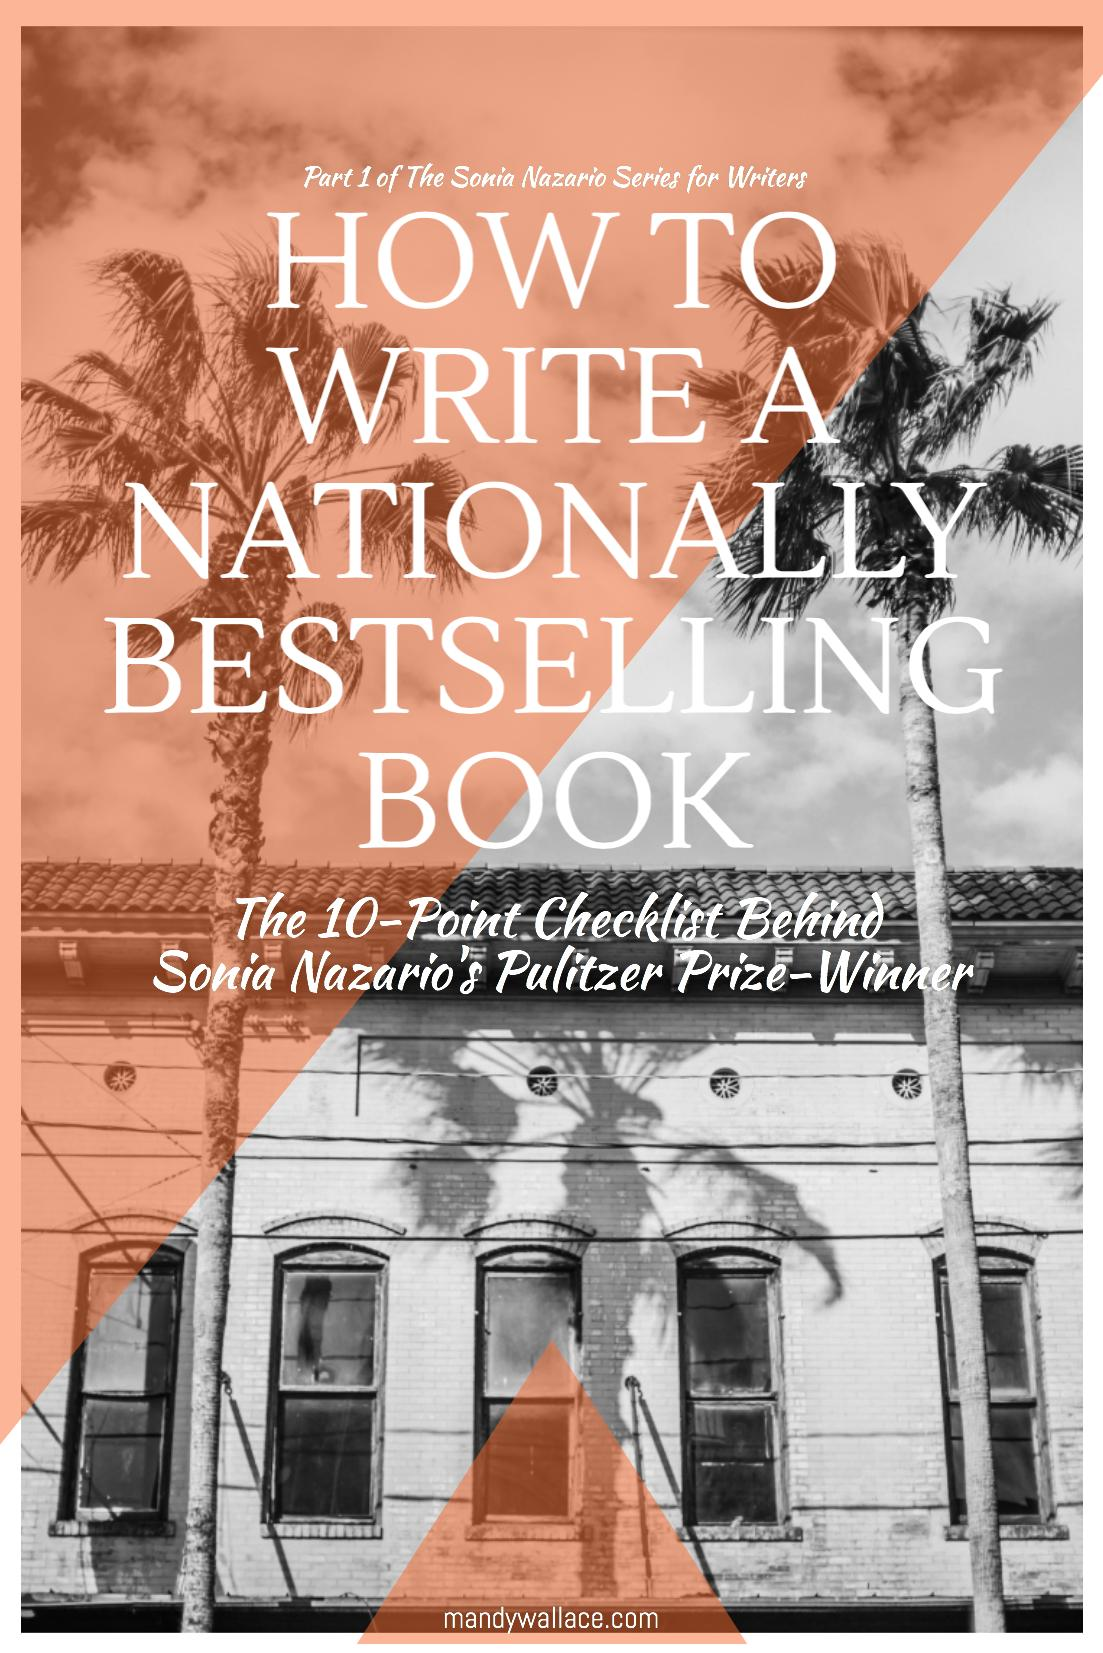 Part One of The Sonia Nazario Interview Series for Writers